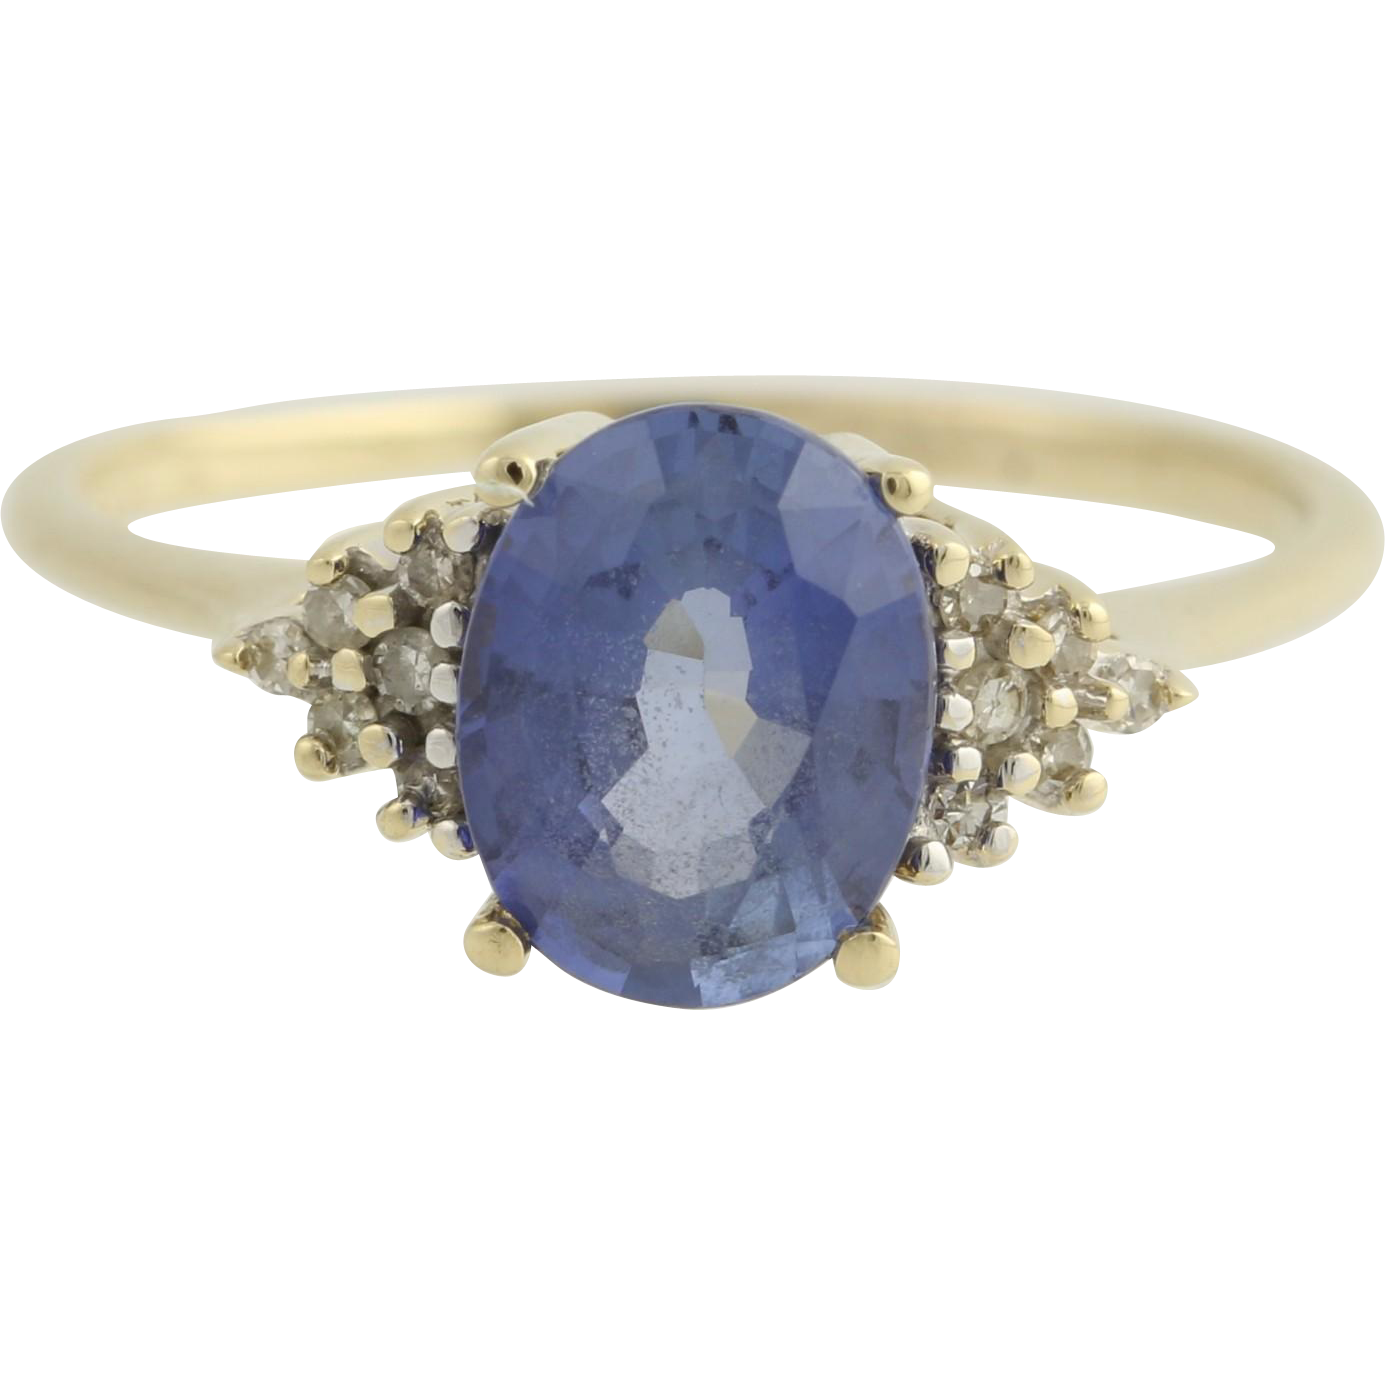 Synthetic Sapphire & Diamonds Cocktail Ring - 14k Yellow Gold Band Women's 9.25